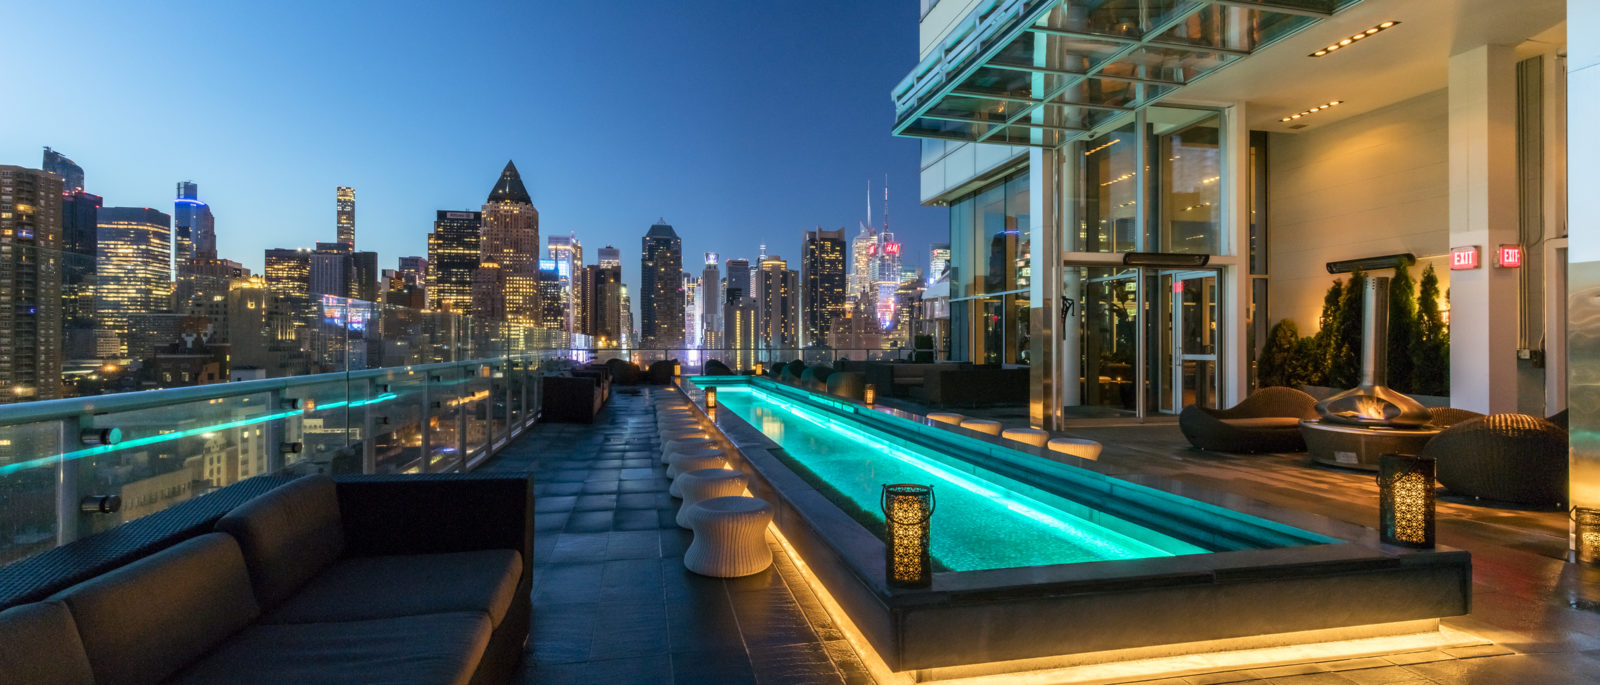 10 best rooftop bars in New York city